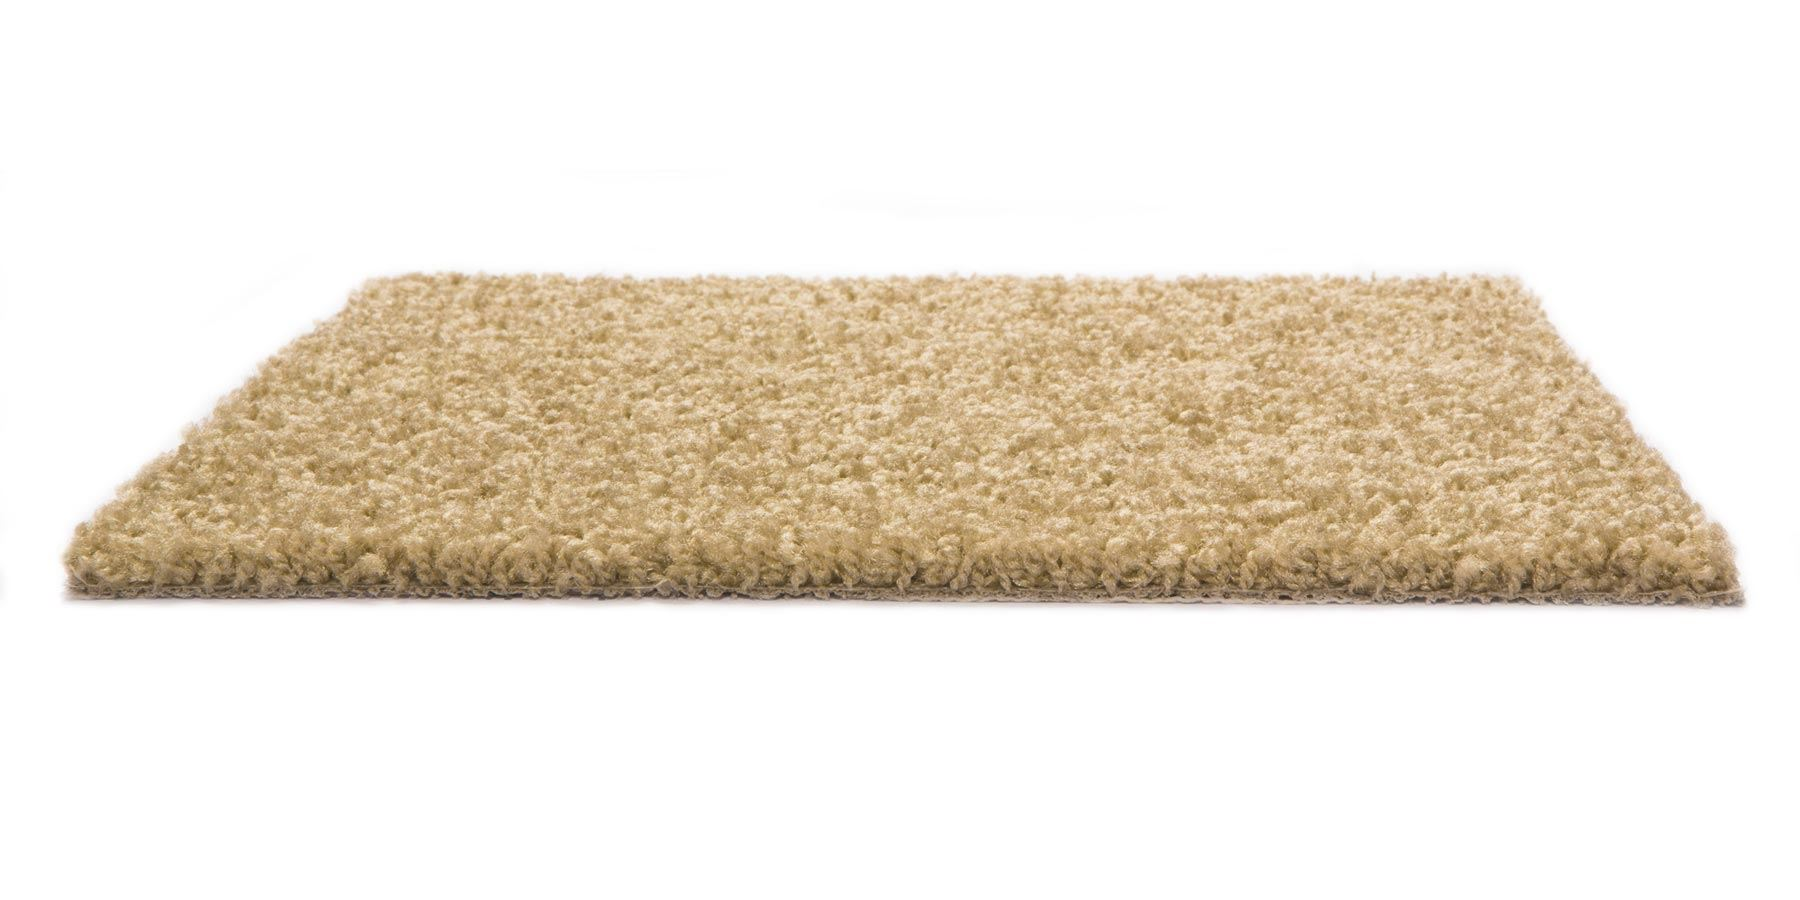 Gilmer Whole Grain Carpet